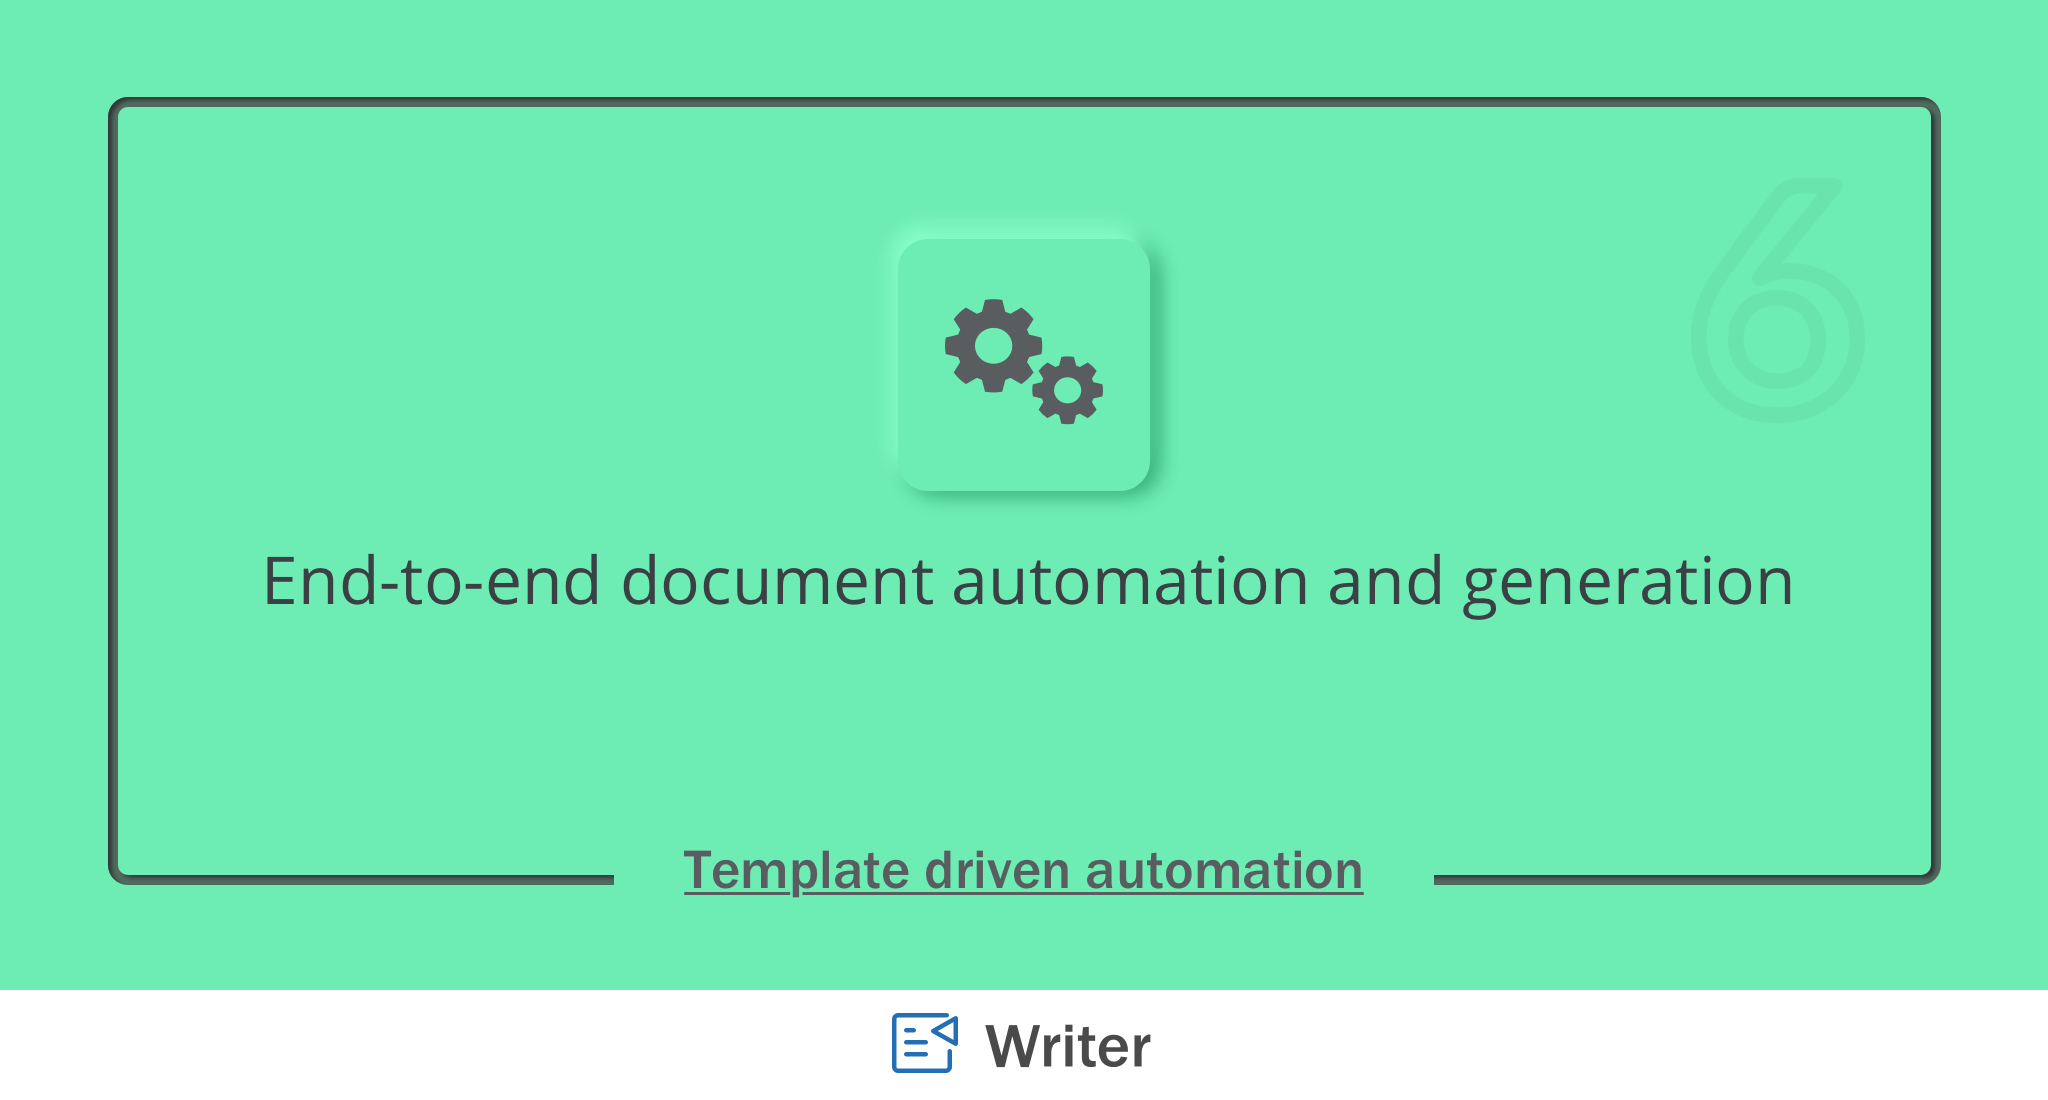 Introducing template-driven document automation in Writer